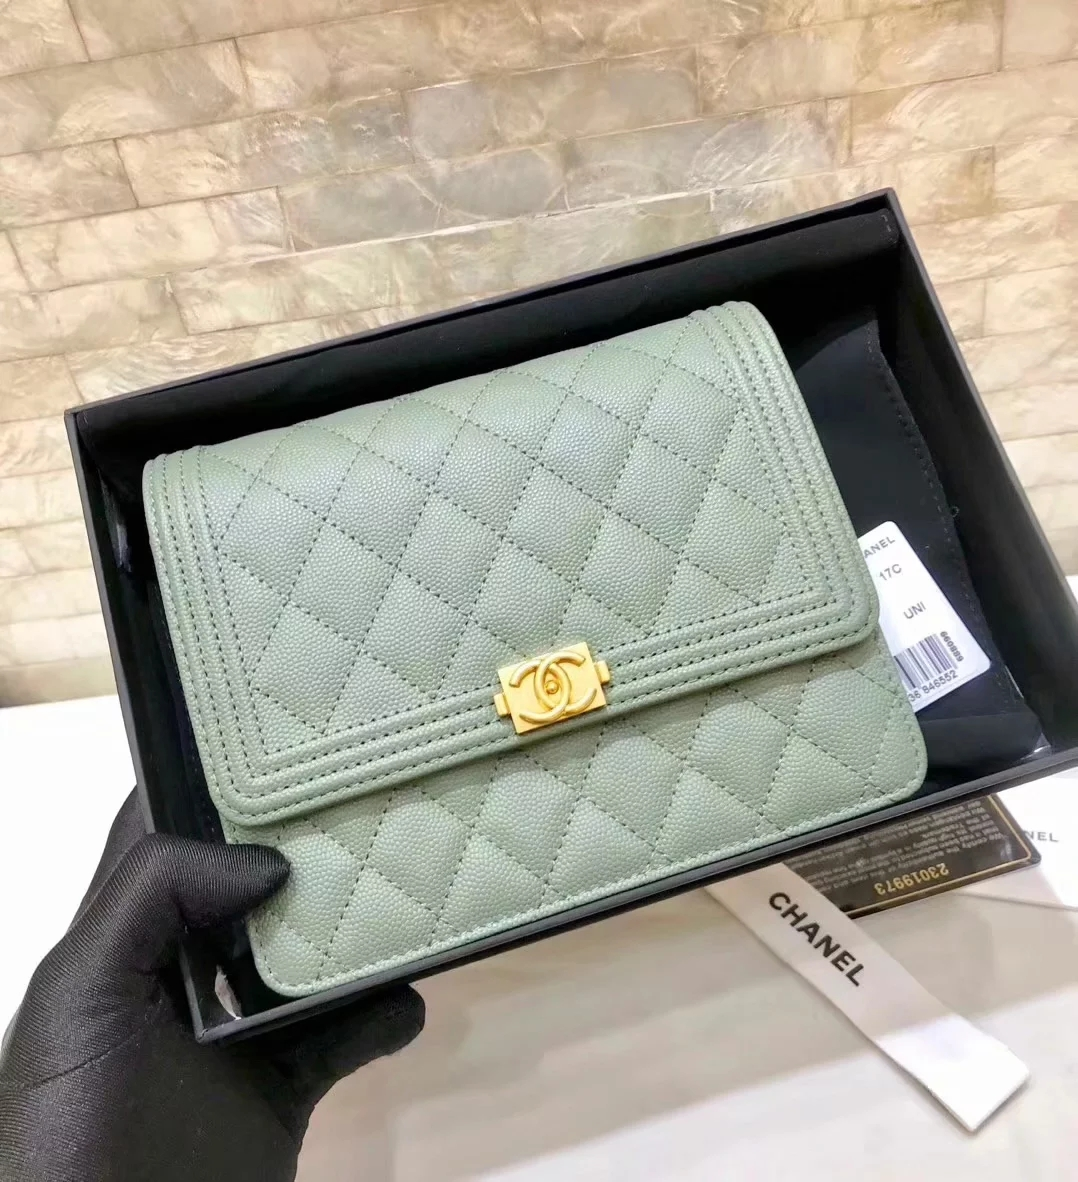 Replica Chanel A84433 BOY CHANEL Clutch with Chain Grained Calfskin Green